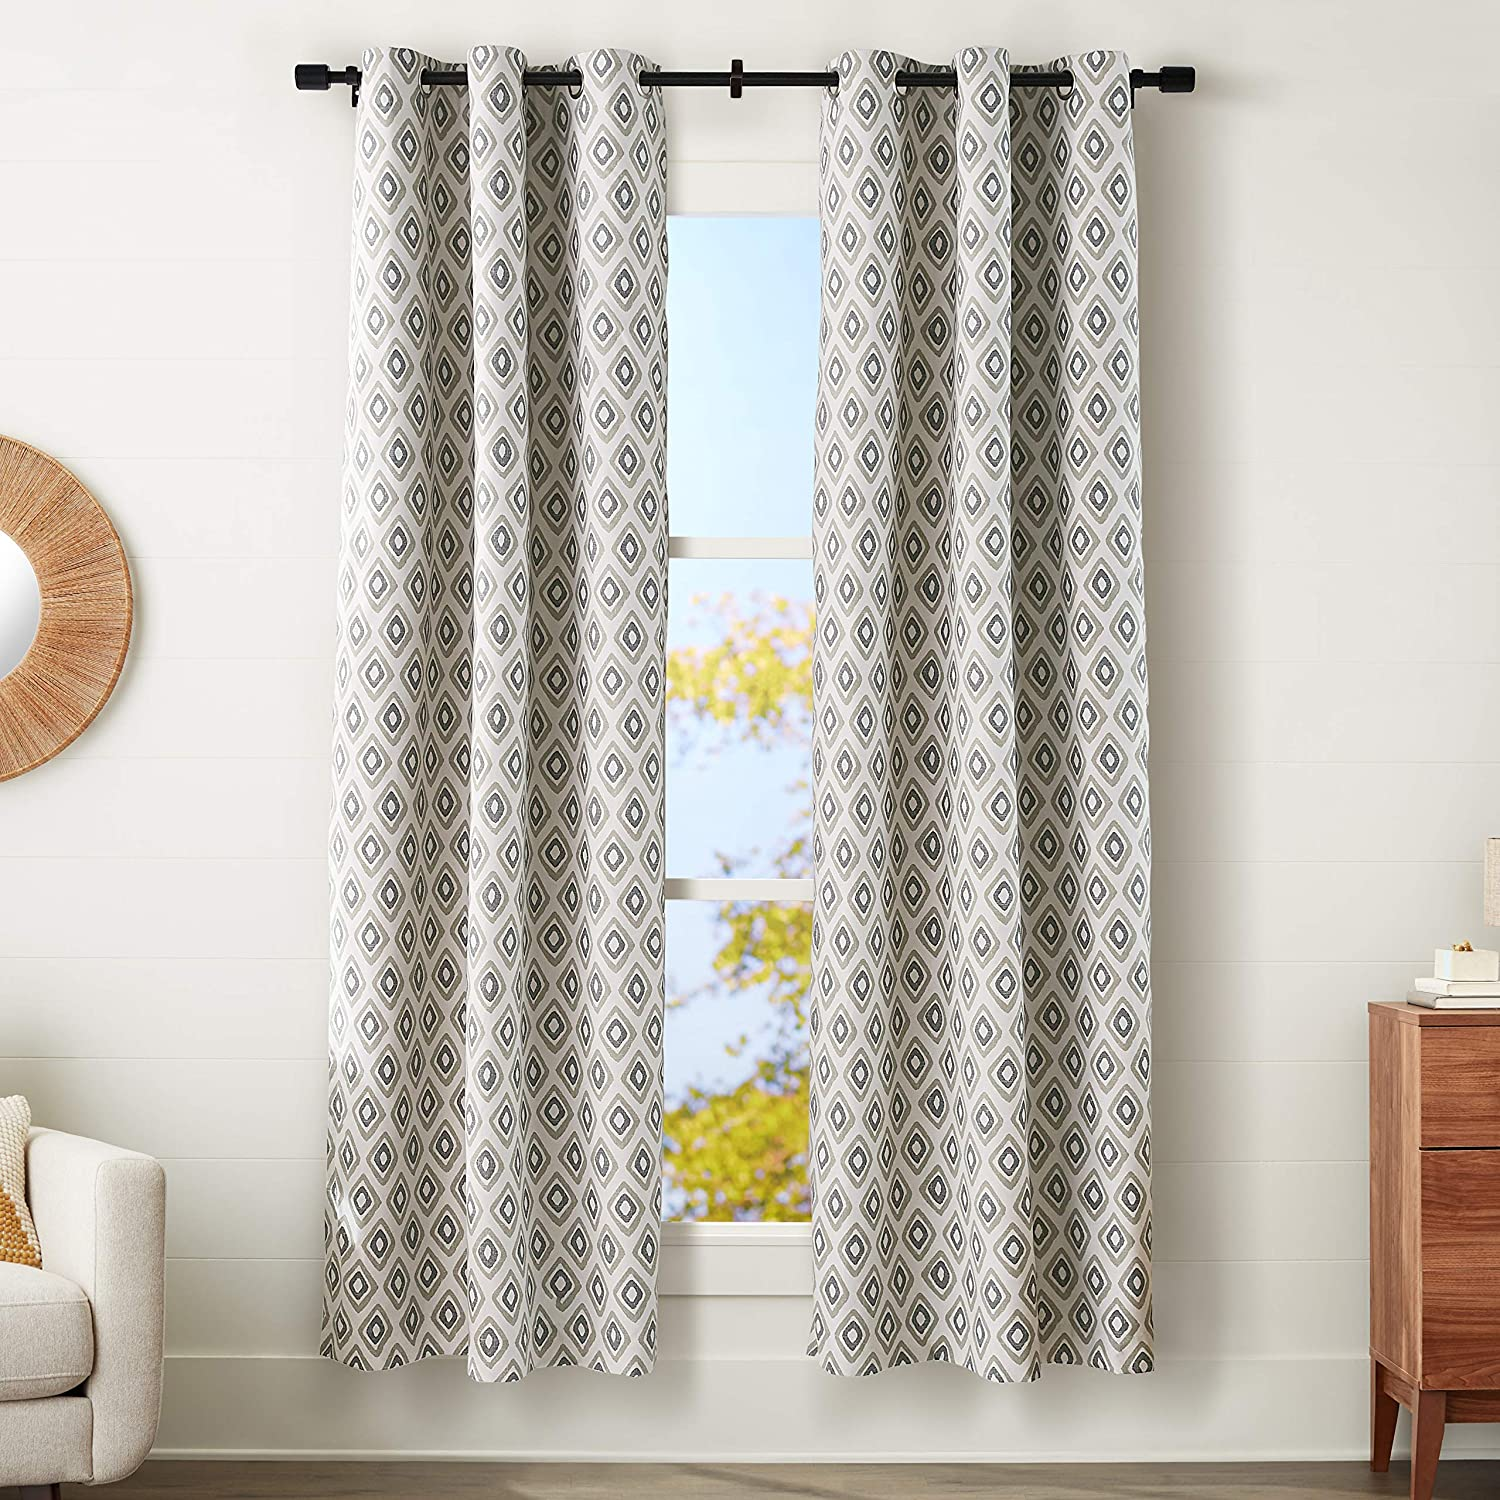 "AmazonBasics 100% Blackout Silky Soft Fabric Window Panel with Grommets and Thermal Insulated, Noise Reducing Blackout Liner - 42"" x 95"", Neutral Tribal Diamond"